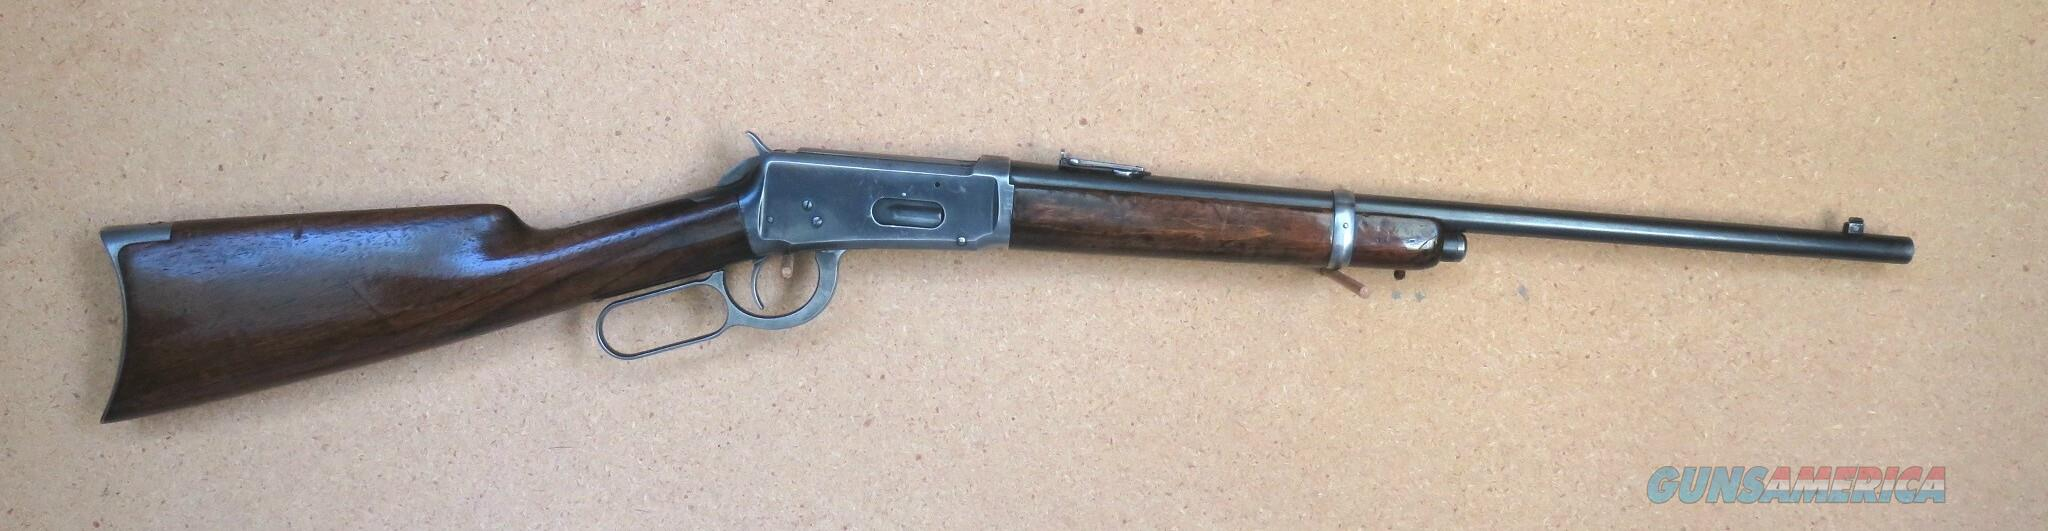 Winchester Saddle Ring Carbine, Spec. Order:  half mag, CB, RB,  Guns > Rifles > Winchester Rifles - Modern Lever > Model 94 > Pre-64